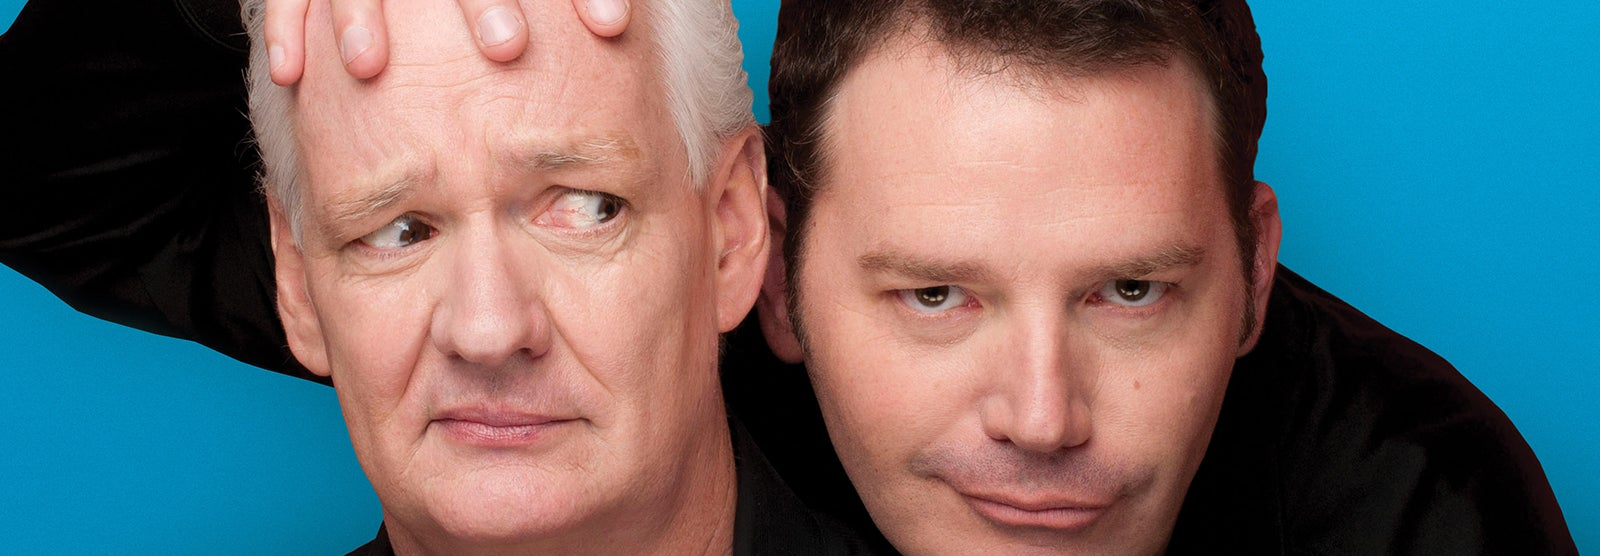 Colin Mochrie & Brad Sherwood of Whose Line is it Anyway?!